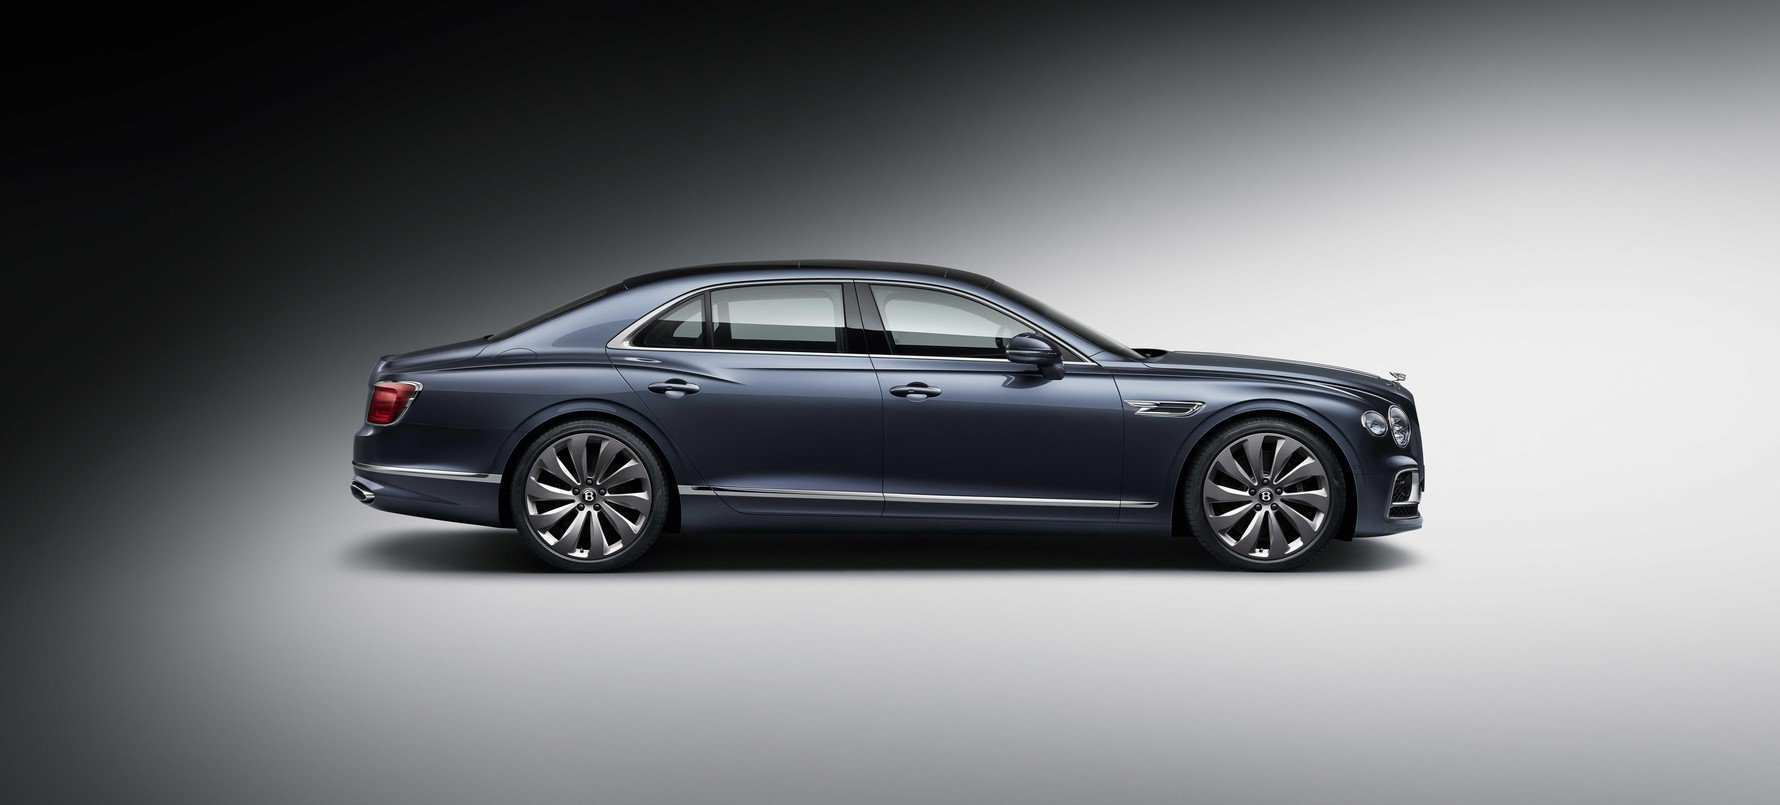 25 New 2019 Bentley Flying Spur Picture